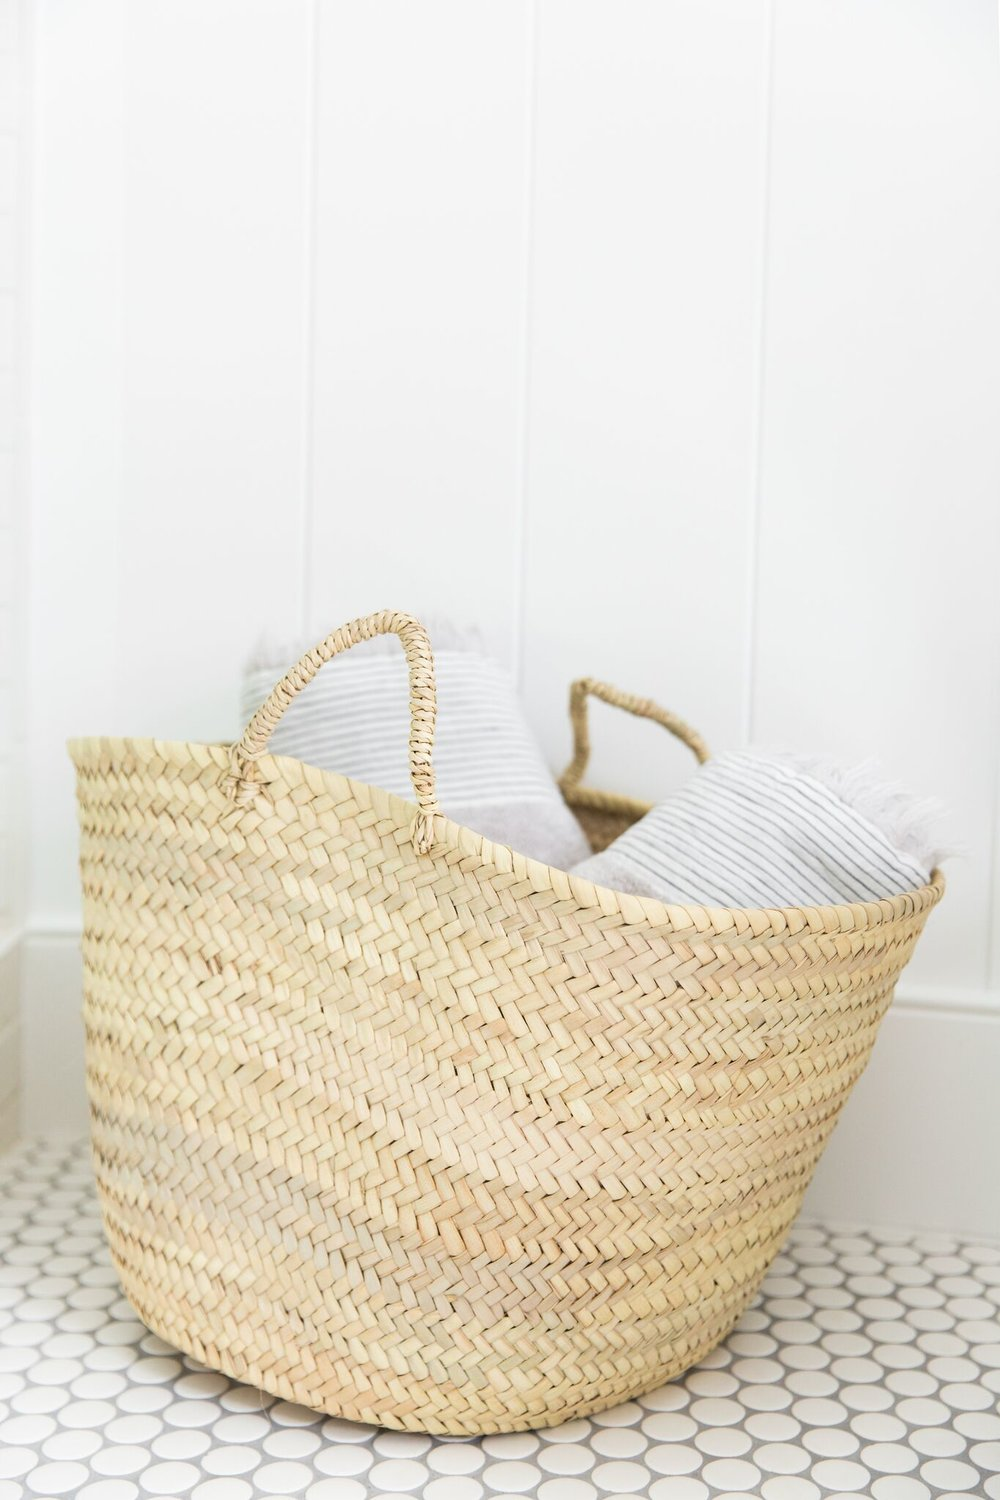 Rockport Towel  +  Caravan Basket